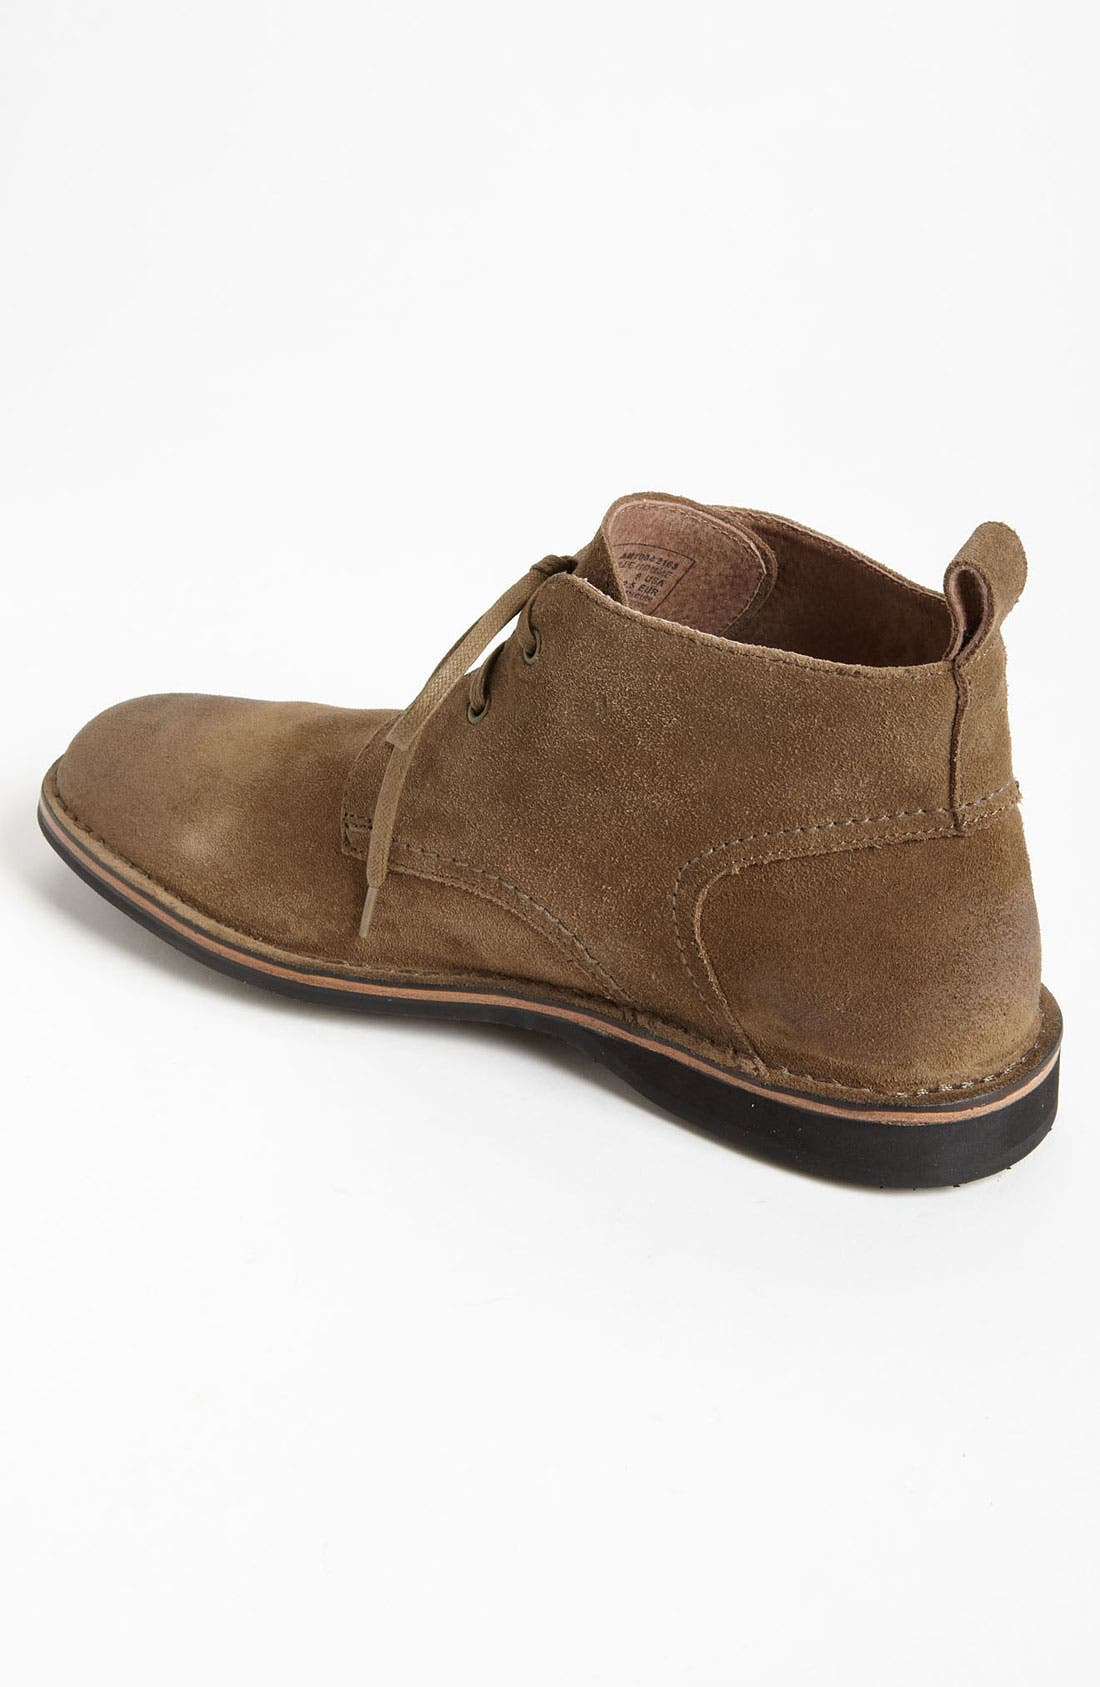 Alternate Image 2  - Andrew Marc 'Dorchester' Chukka Boot (Men)